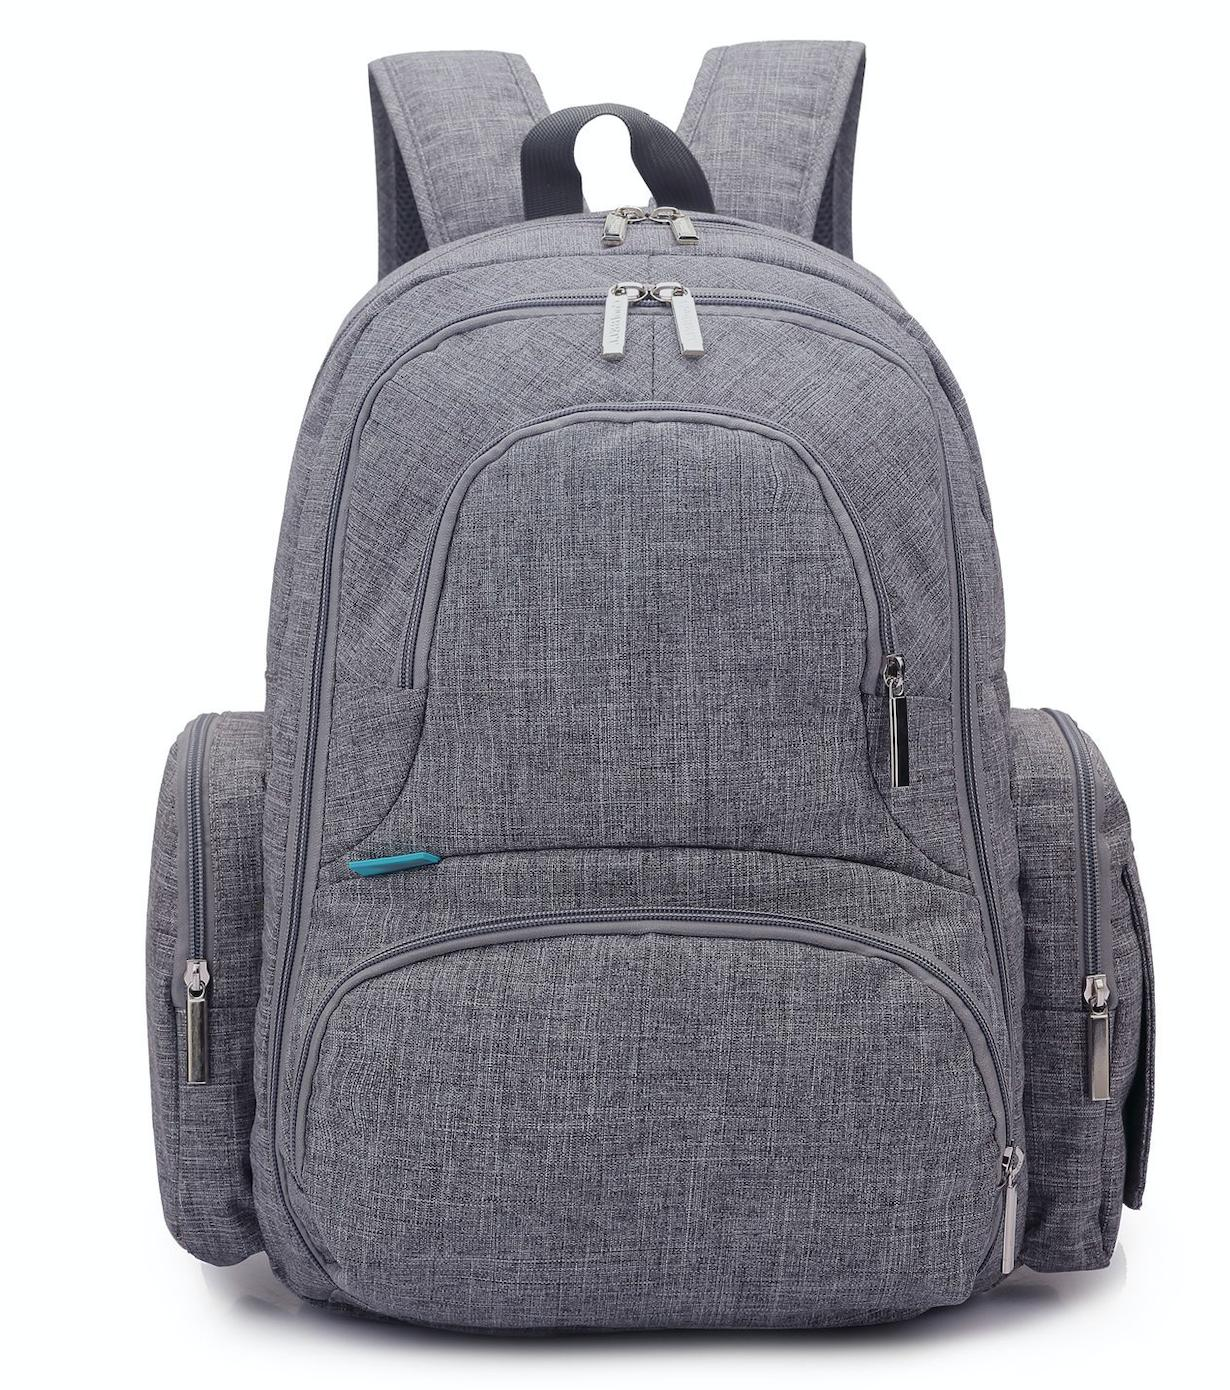 baby diaper backpack with insulated pockets large